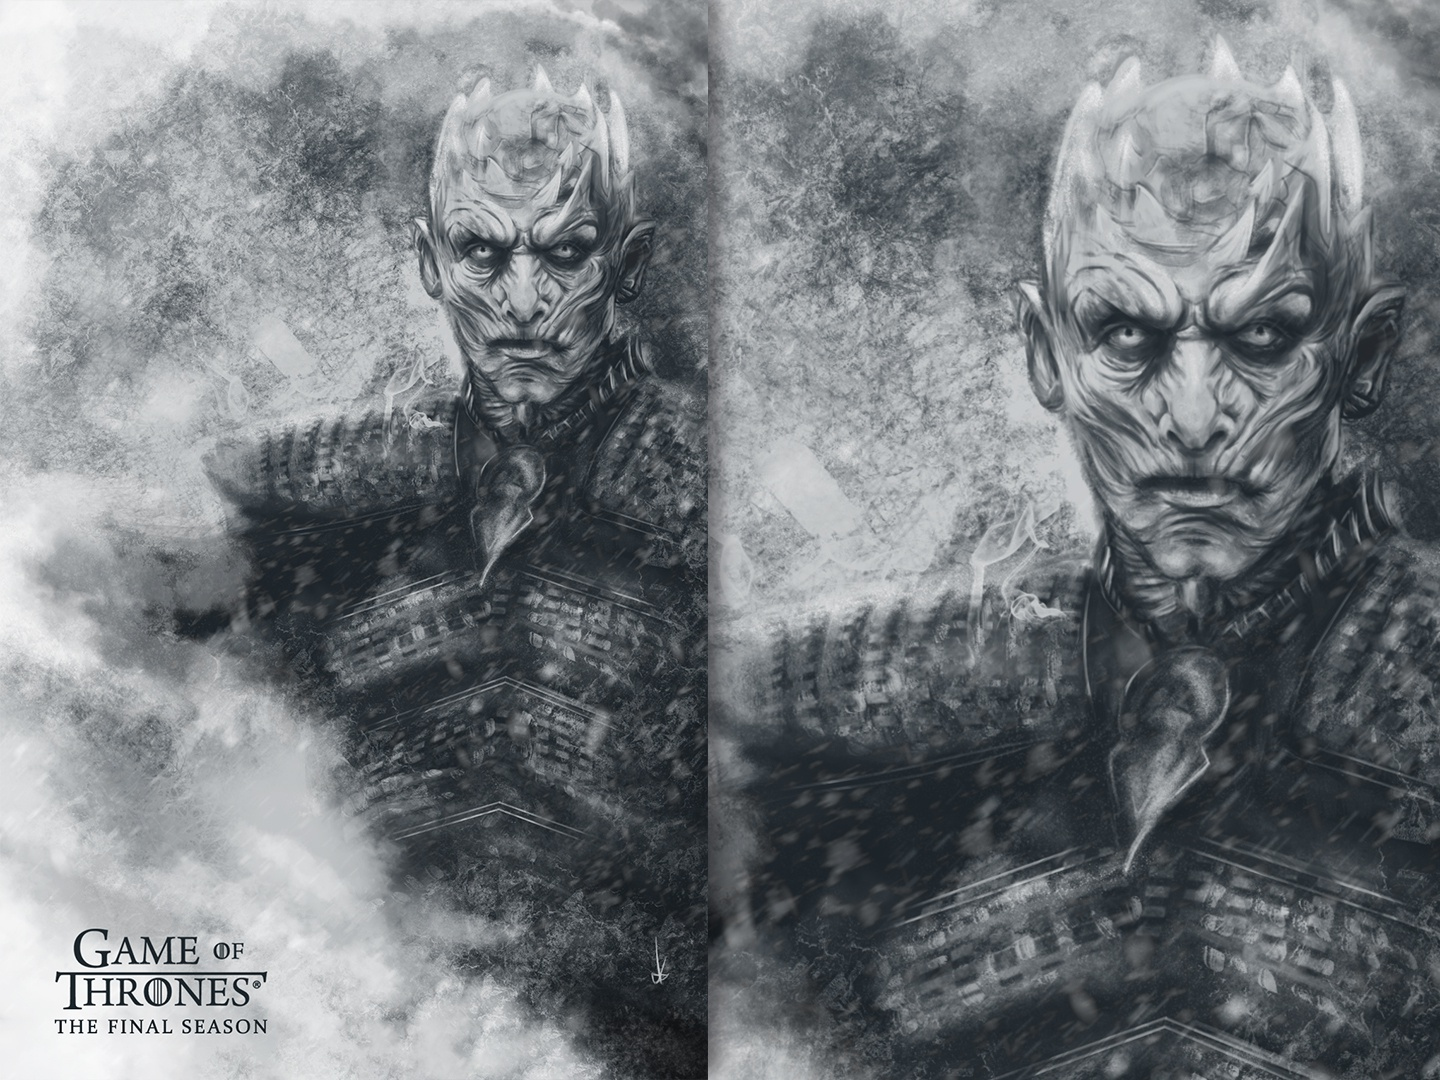 Game of Thrones Poster - Night King photoshop wacom character king night king night hbo tv series tv series art series poster design poster art poster game of thrones design illustration